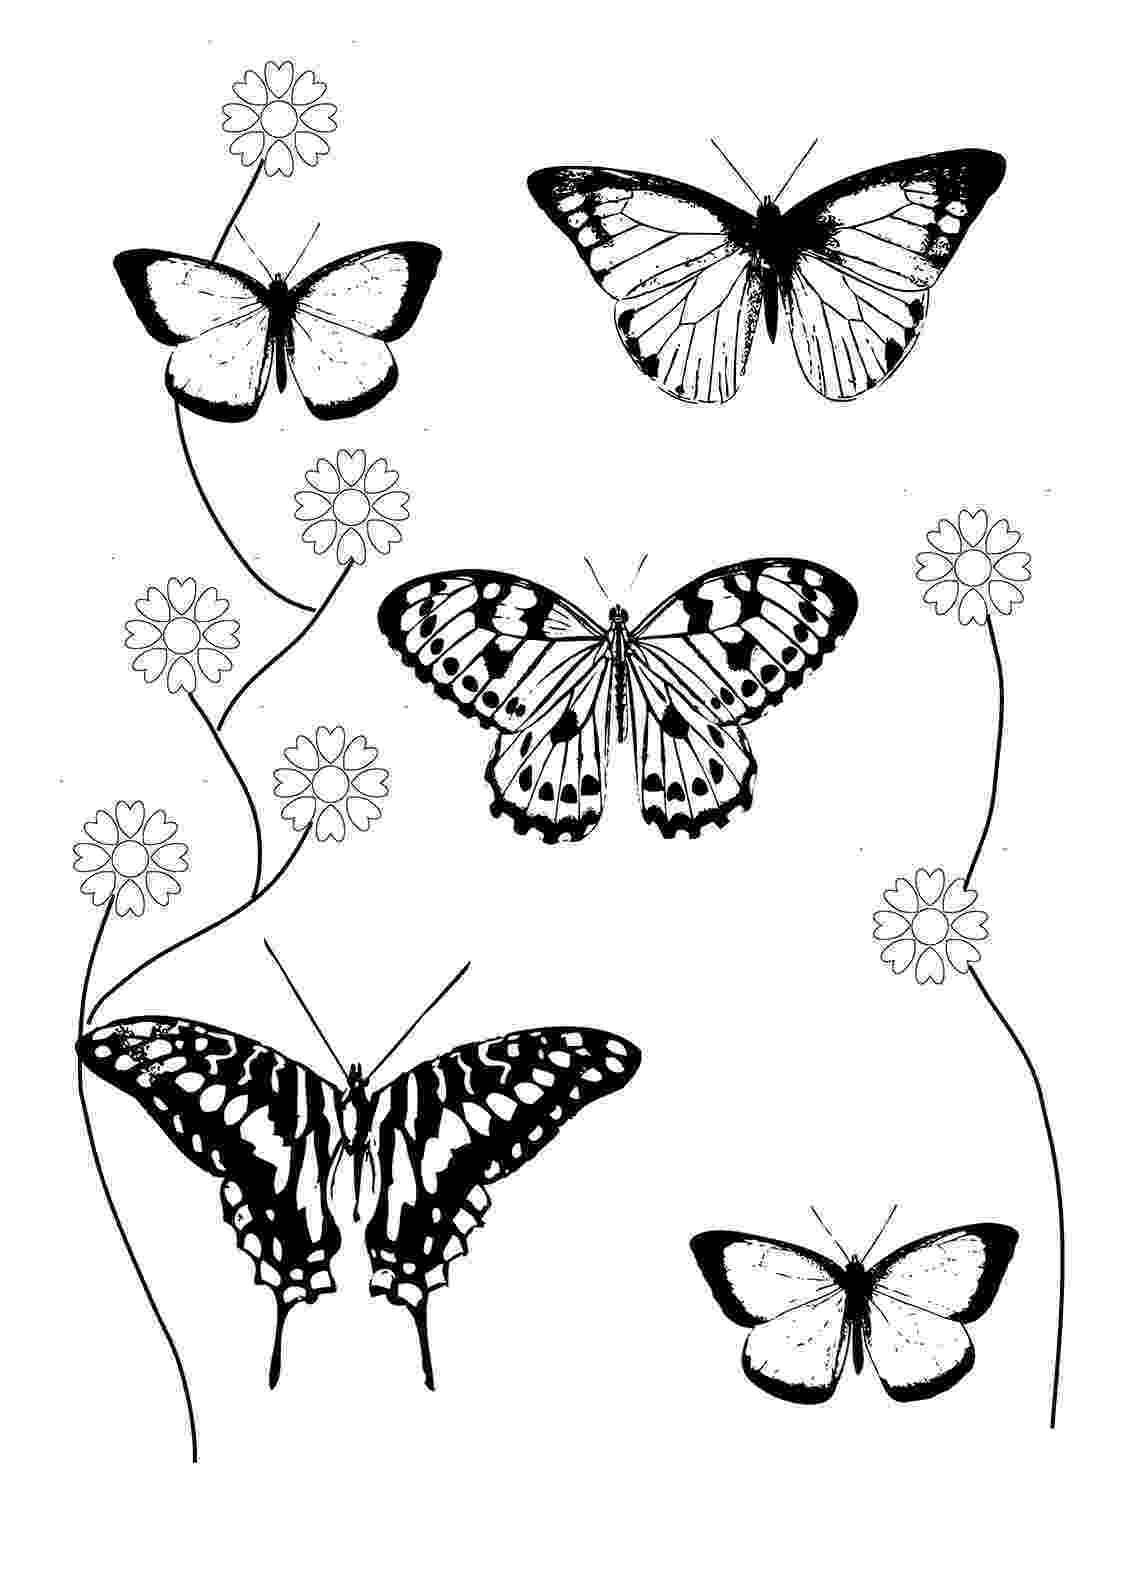 printable coloring pages of flowers and butterflies 30 butterfly templates printable crafts colouring of pages and butterflies coloring printable flowers